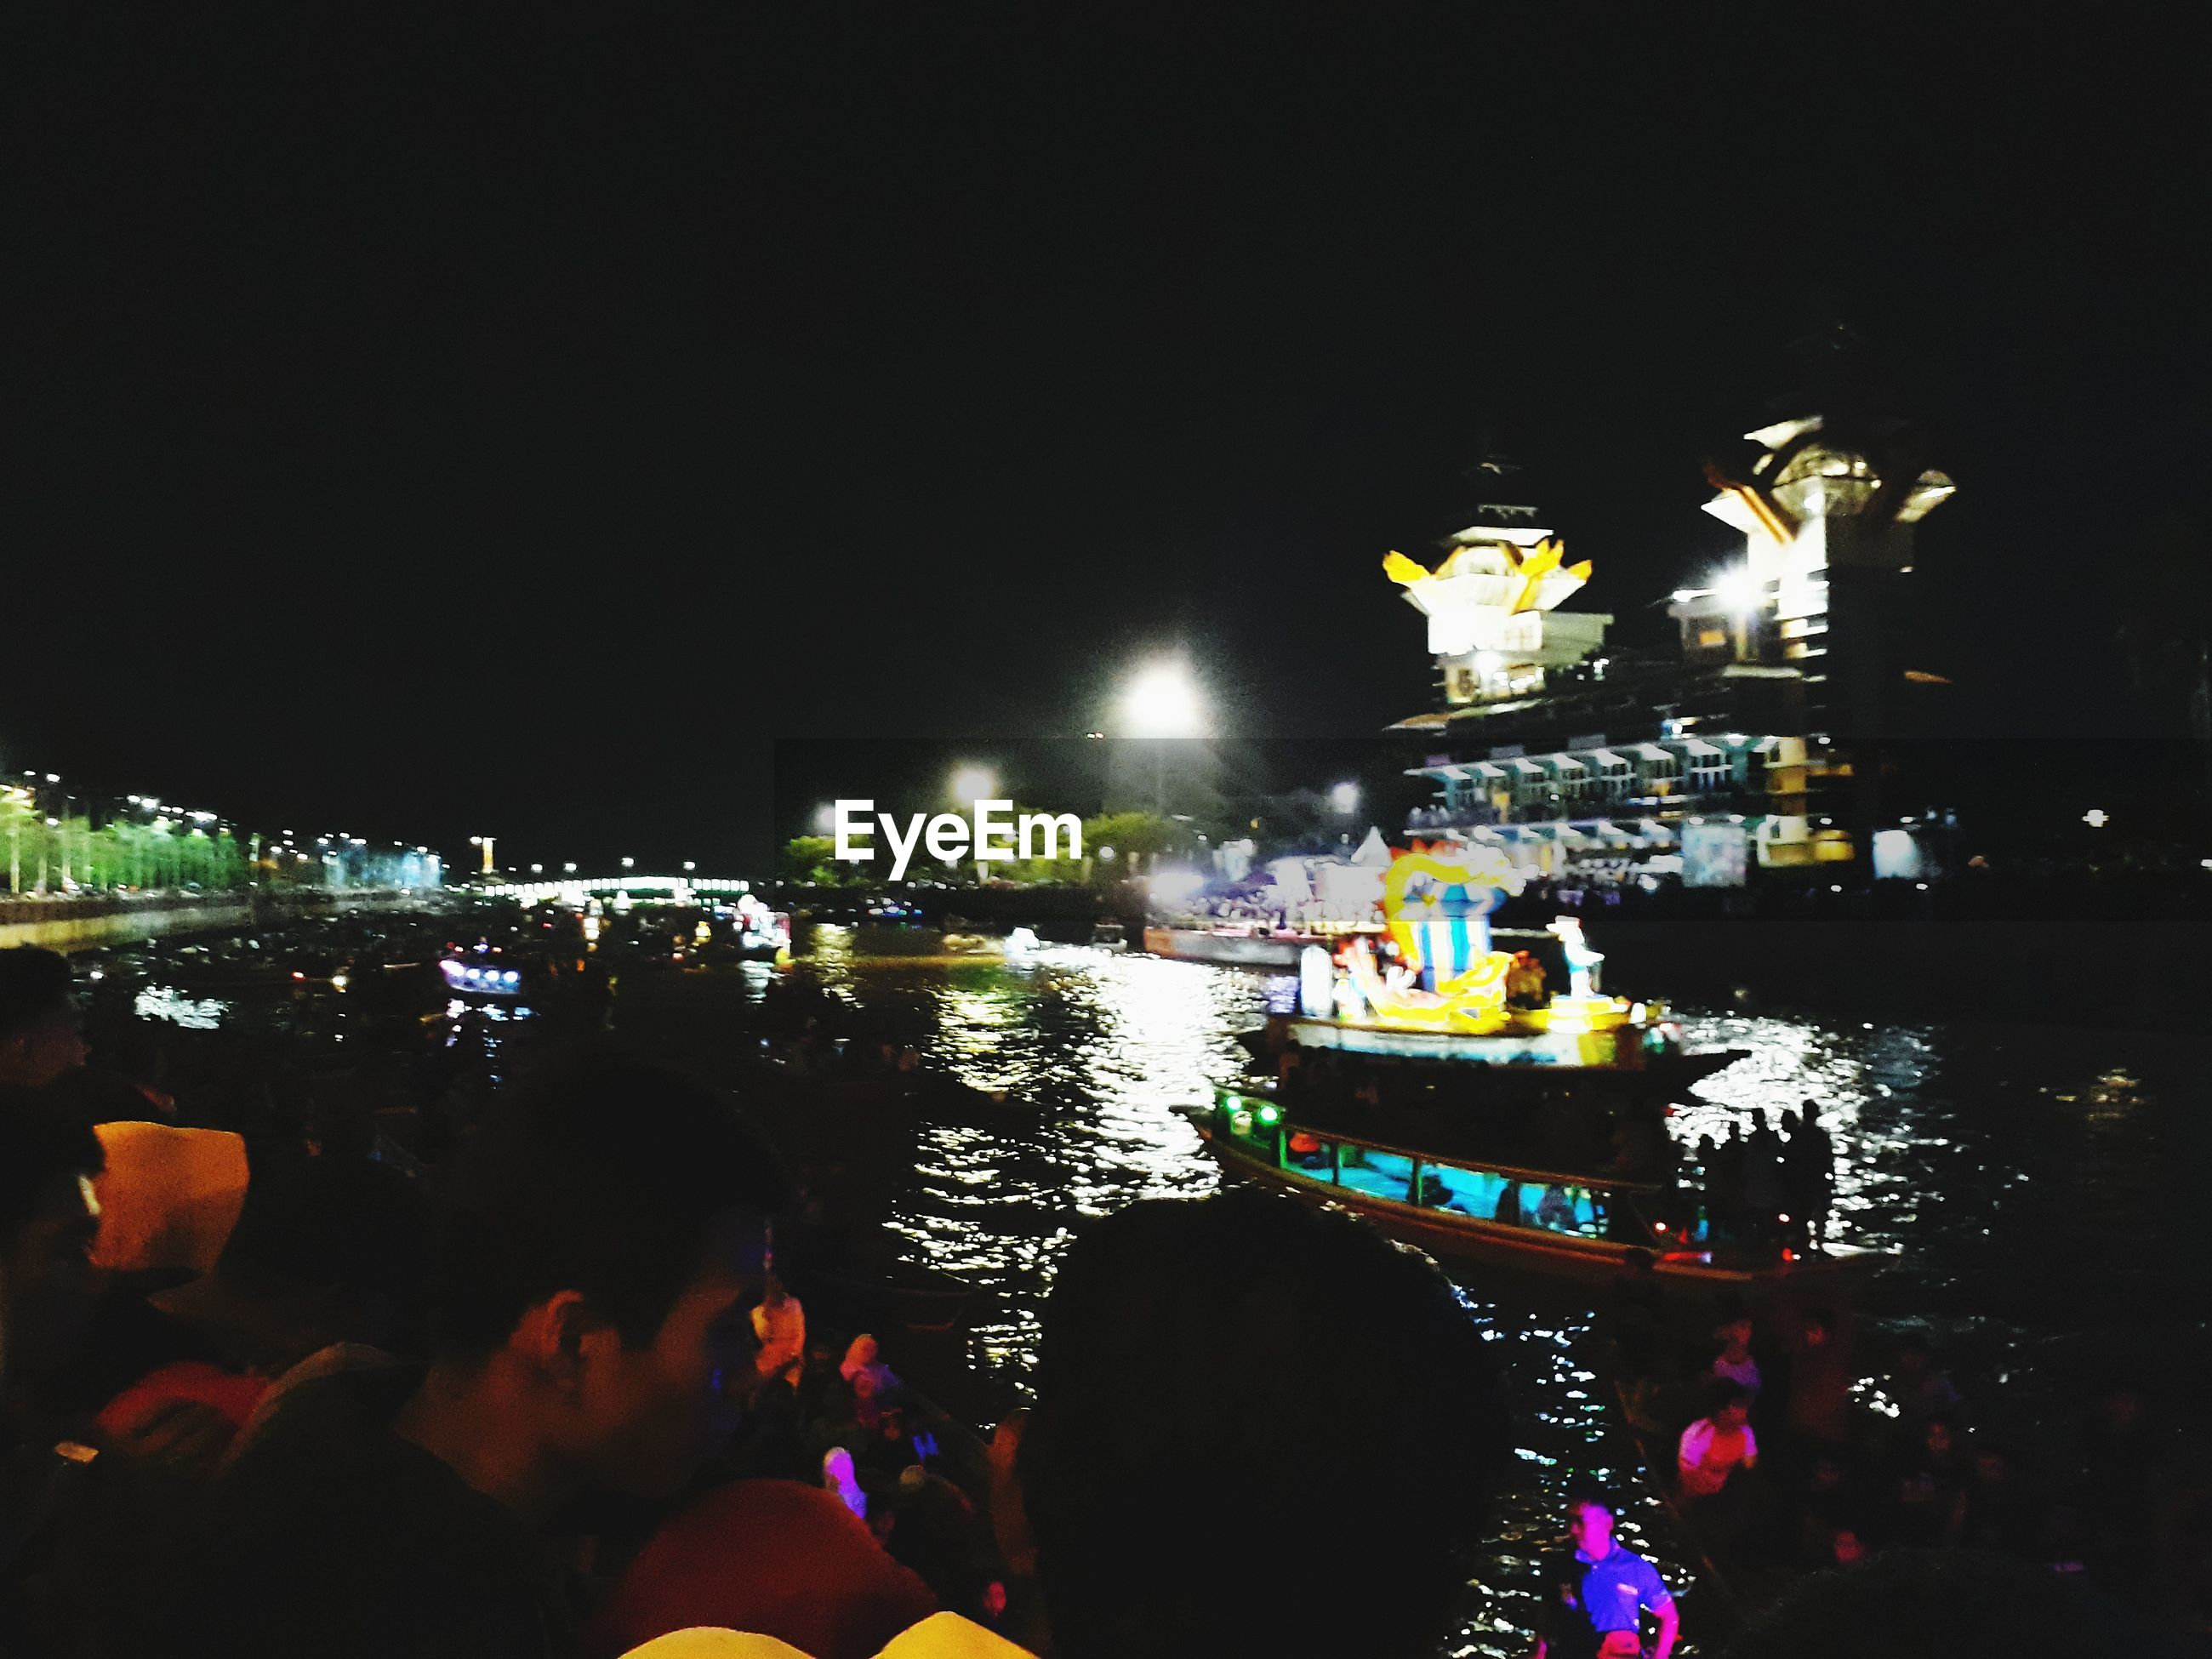 illuminated, night, built structure, architecture, building exterior, city, real people, city life, lifestyles, leisure activity, large group of people, water, nightlife, outdoors, cityscape, sea, men, crowd, nautical vessel, sky, people